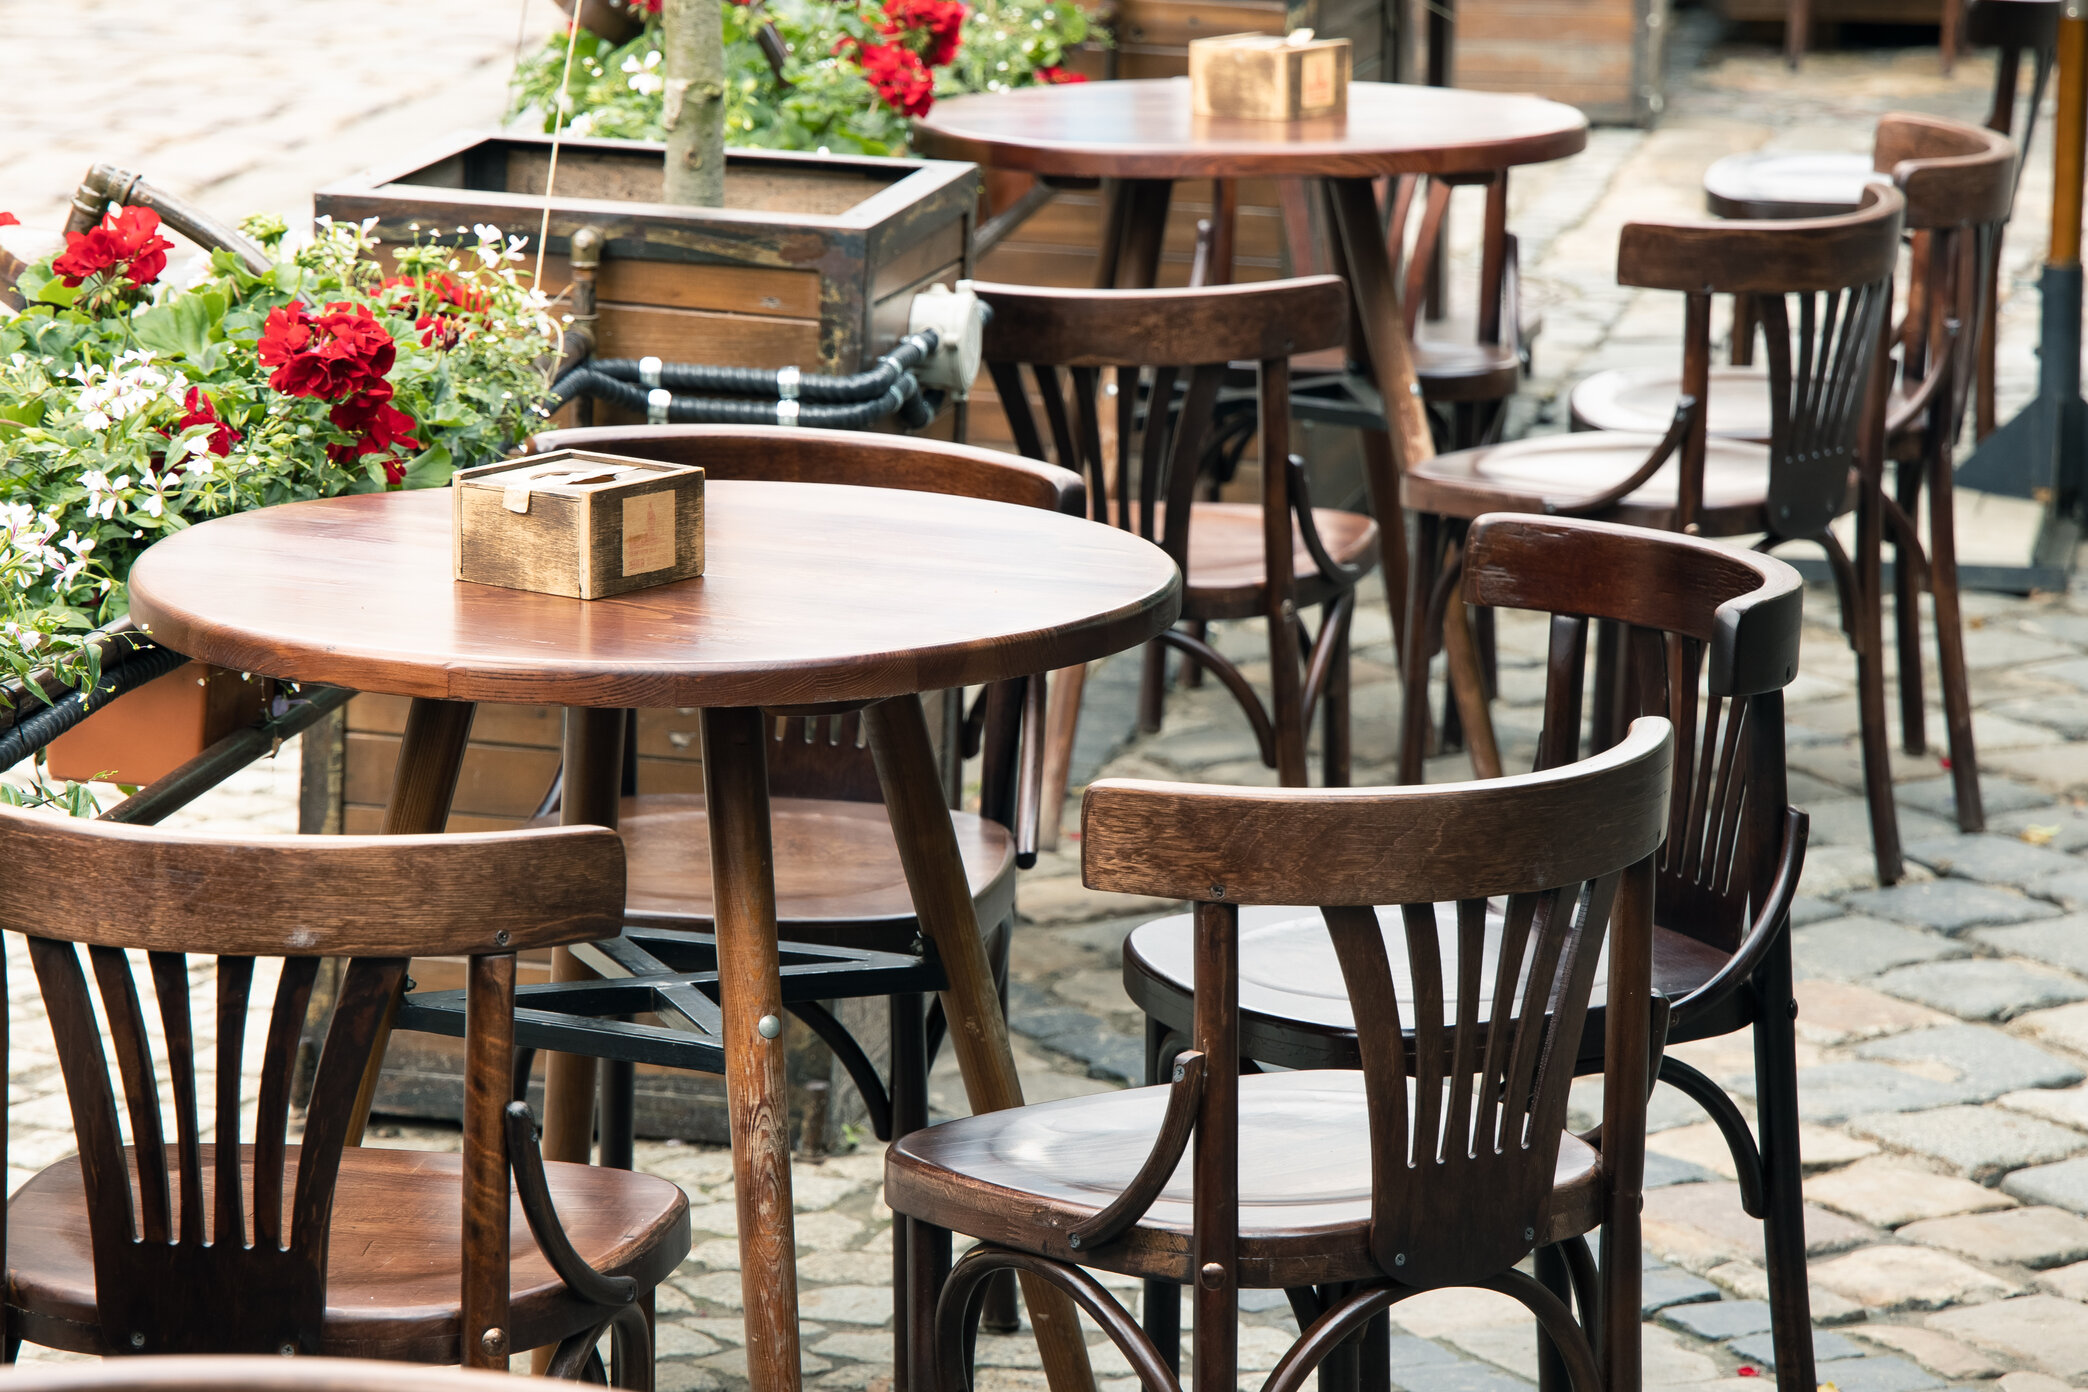 Leicester-based food safety expert gives advice on outdoor dining ahead of April reopening